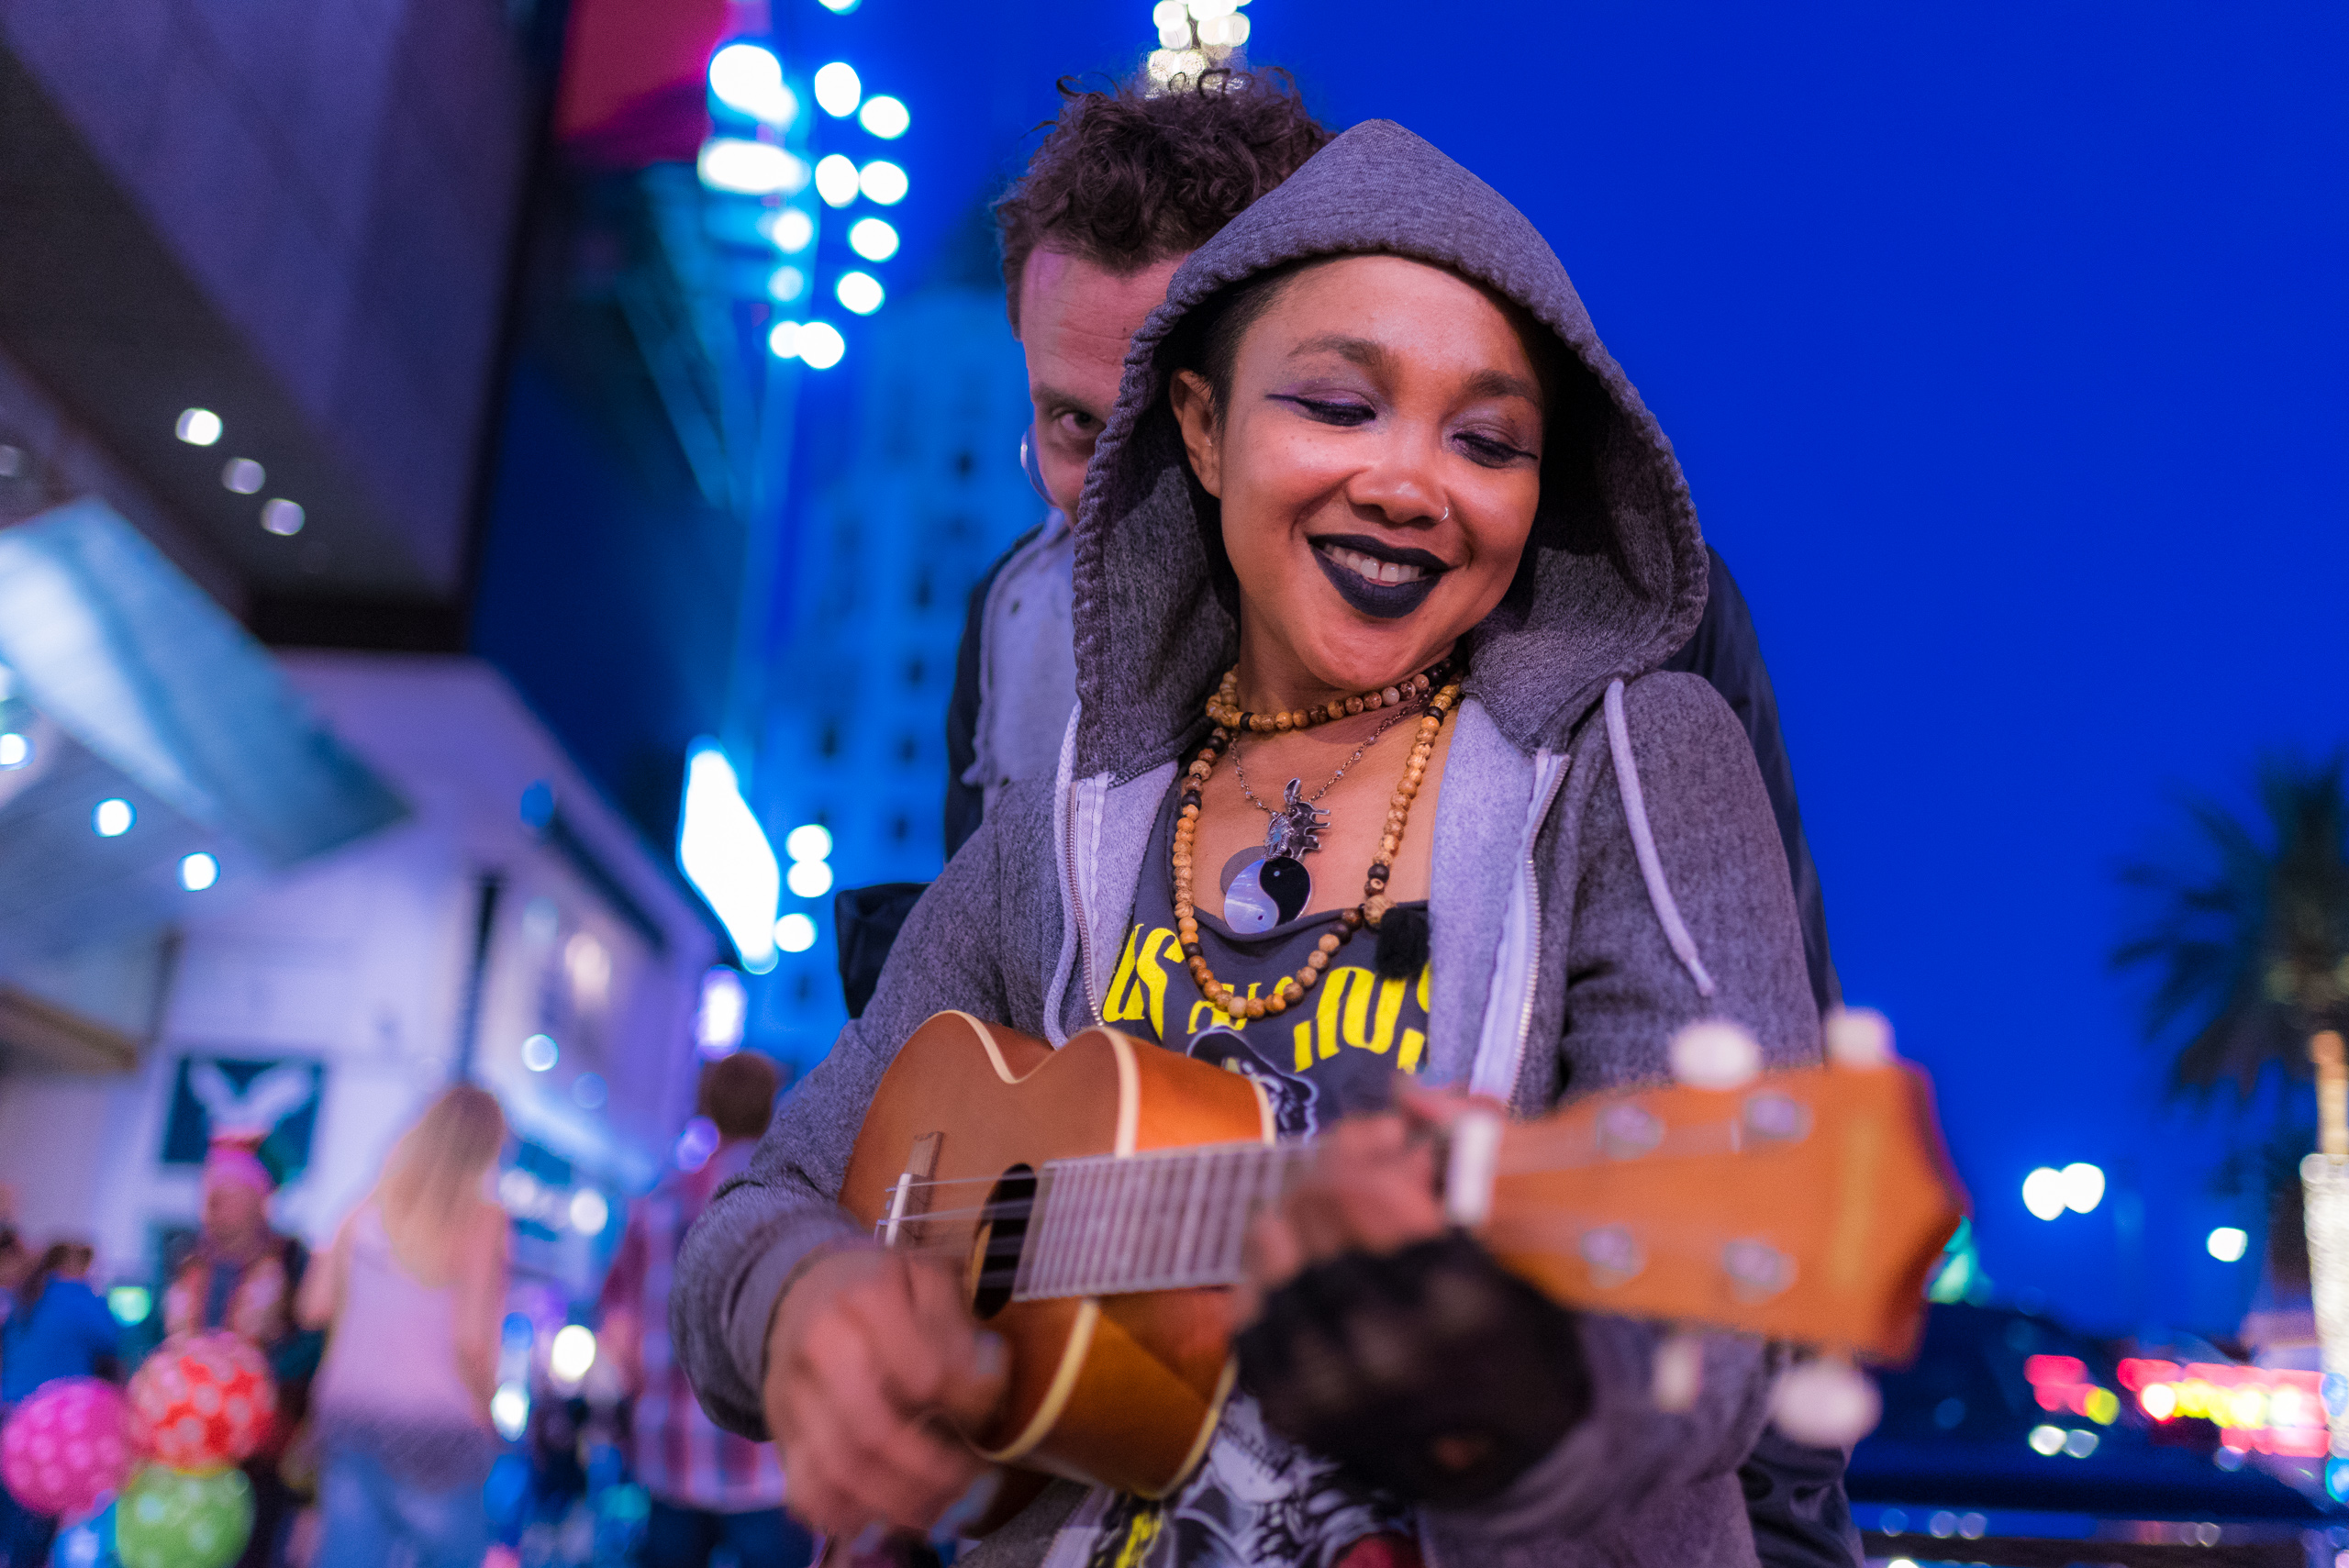 A woman in a hoodie plays a song in a ukulele as a guy behind her peeps around from behind